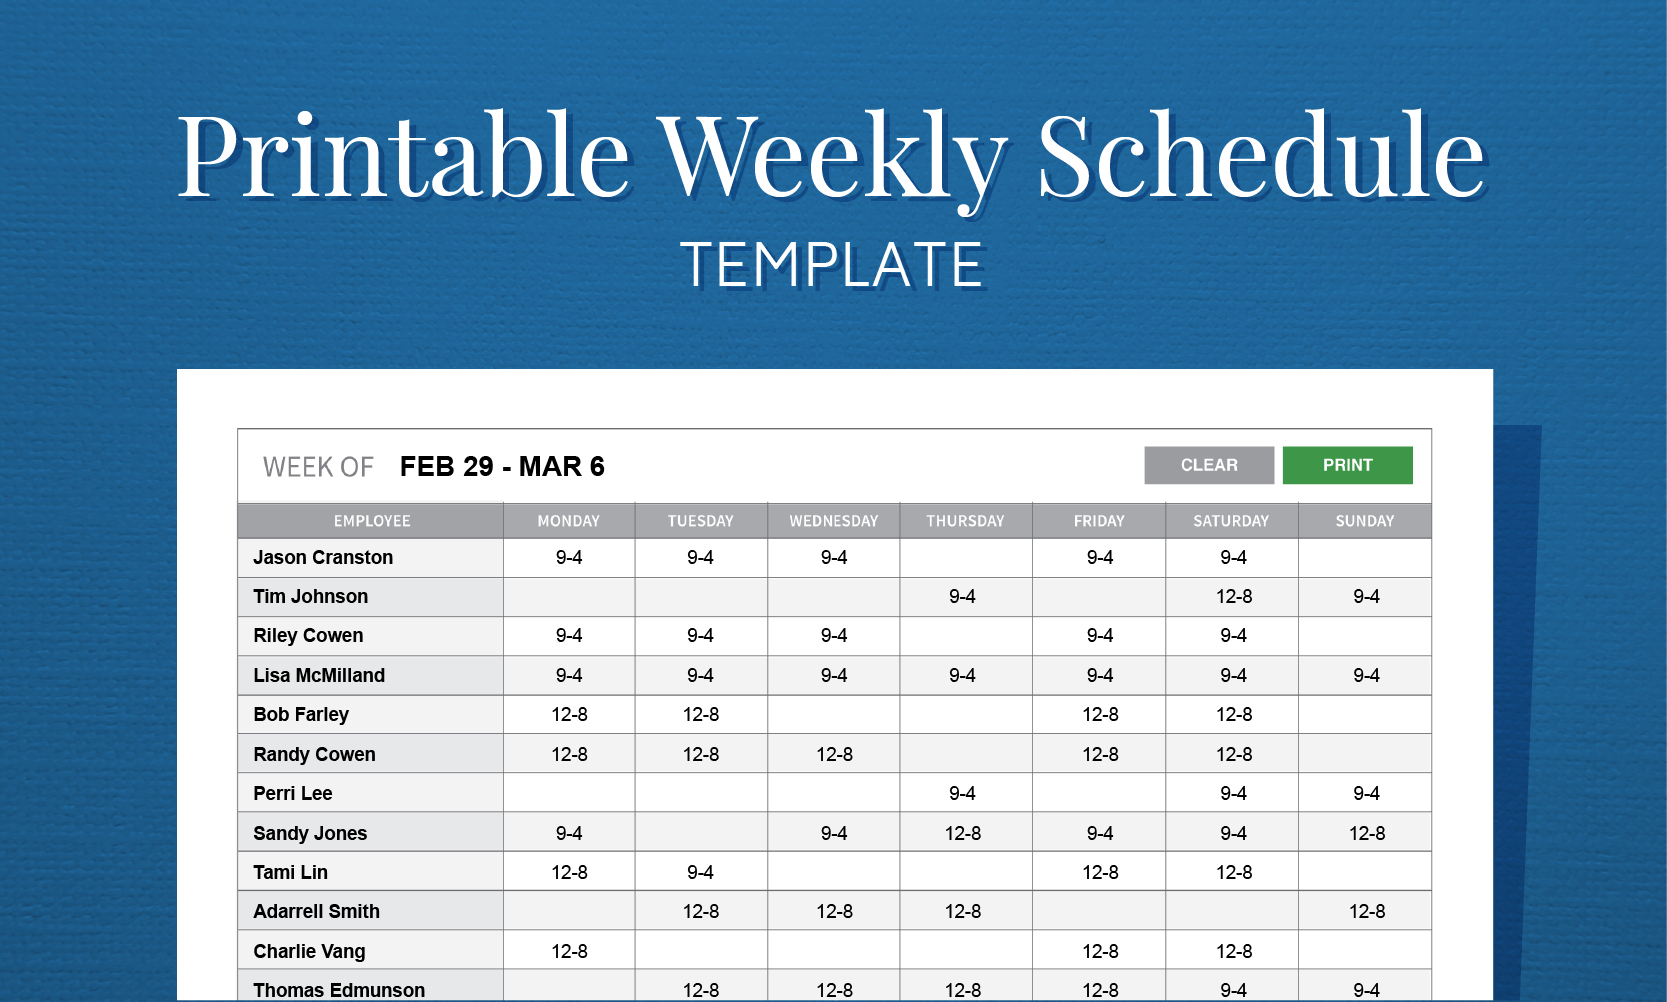 Free Printable Weekly Work Schedule Template For Employee Scheduling - Free Printable Blank Work Schedules